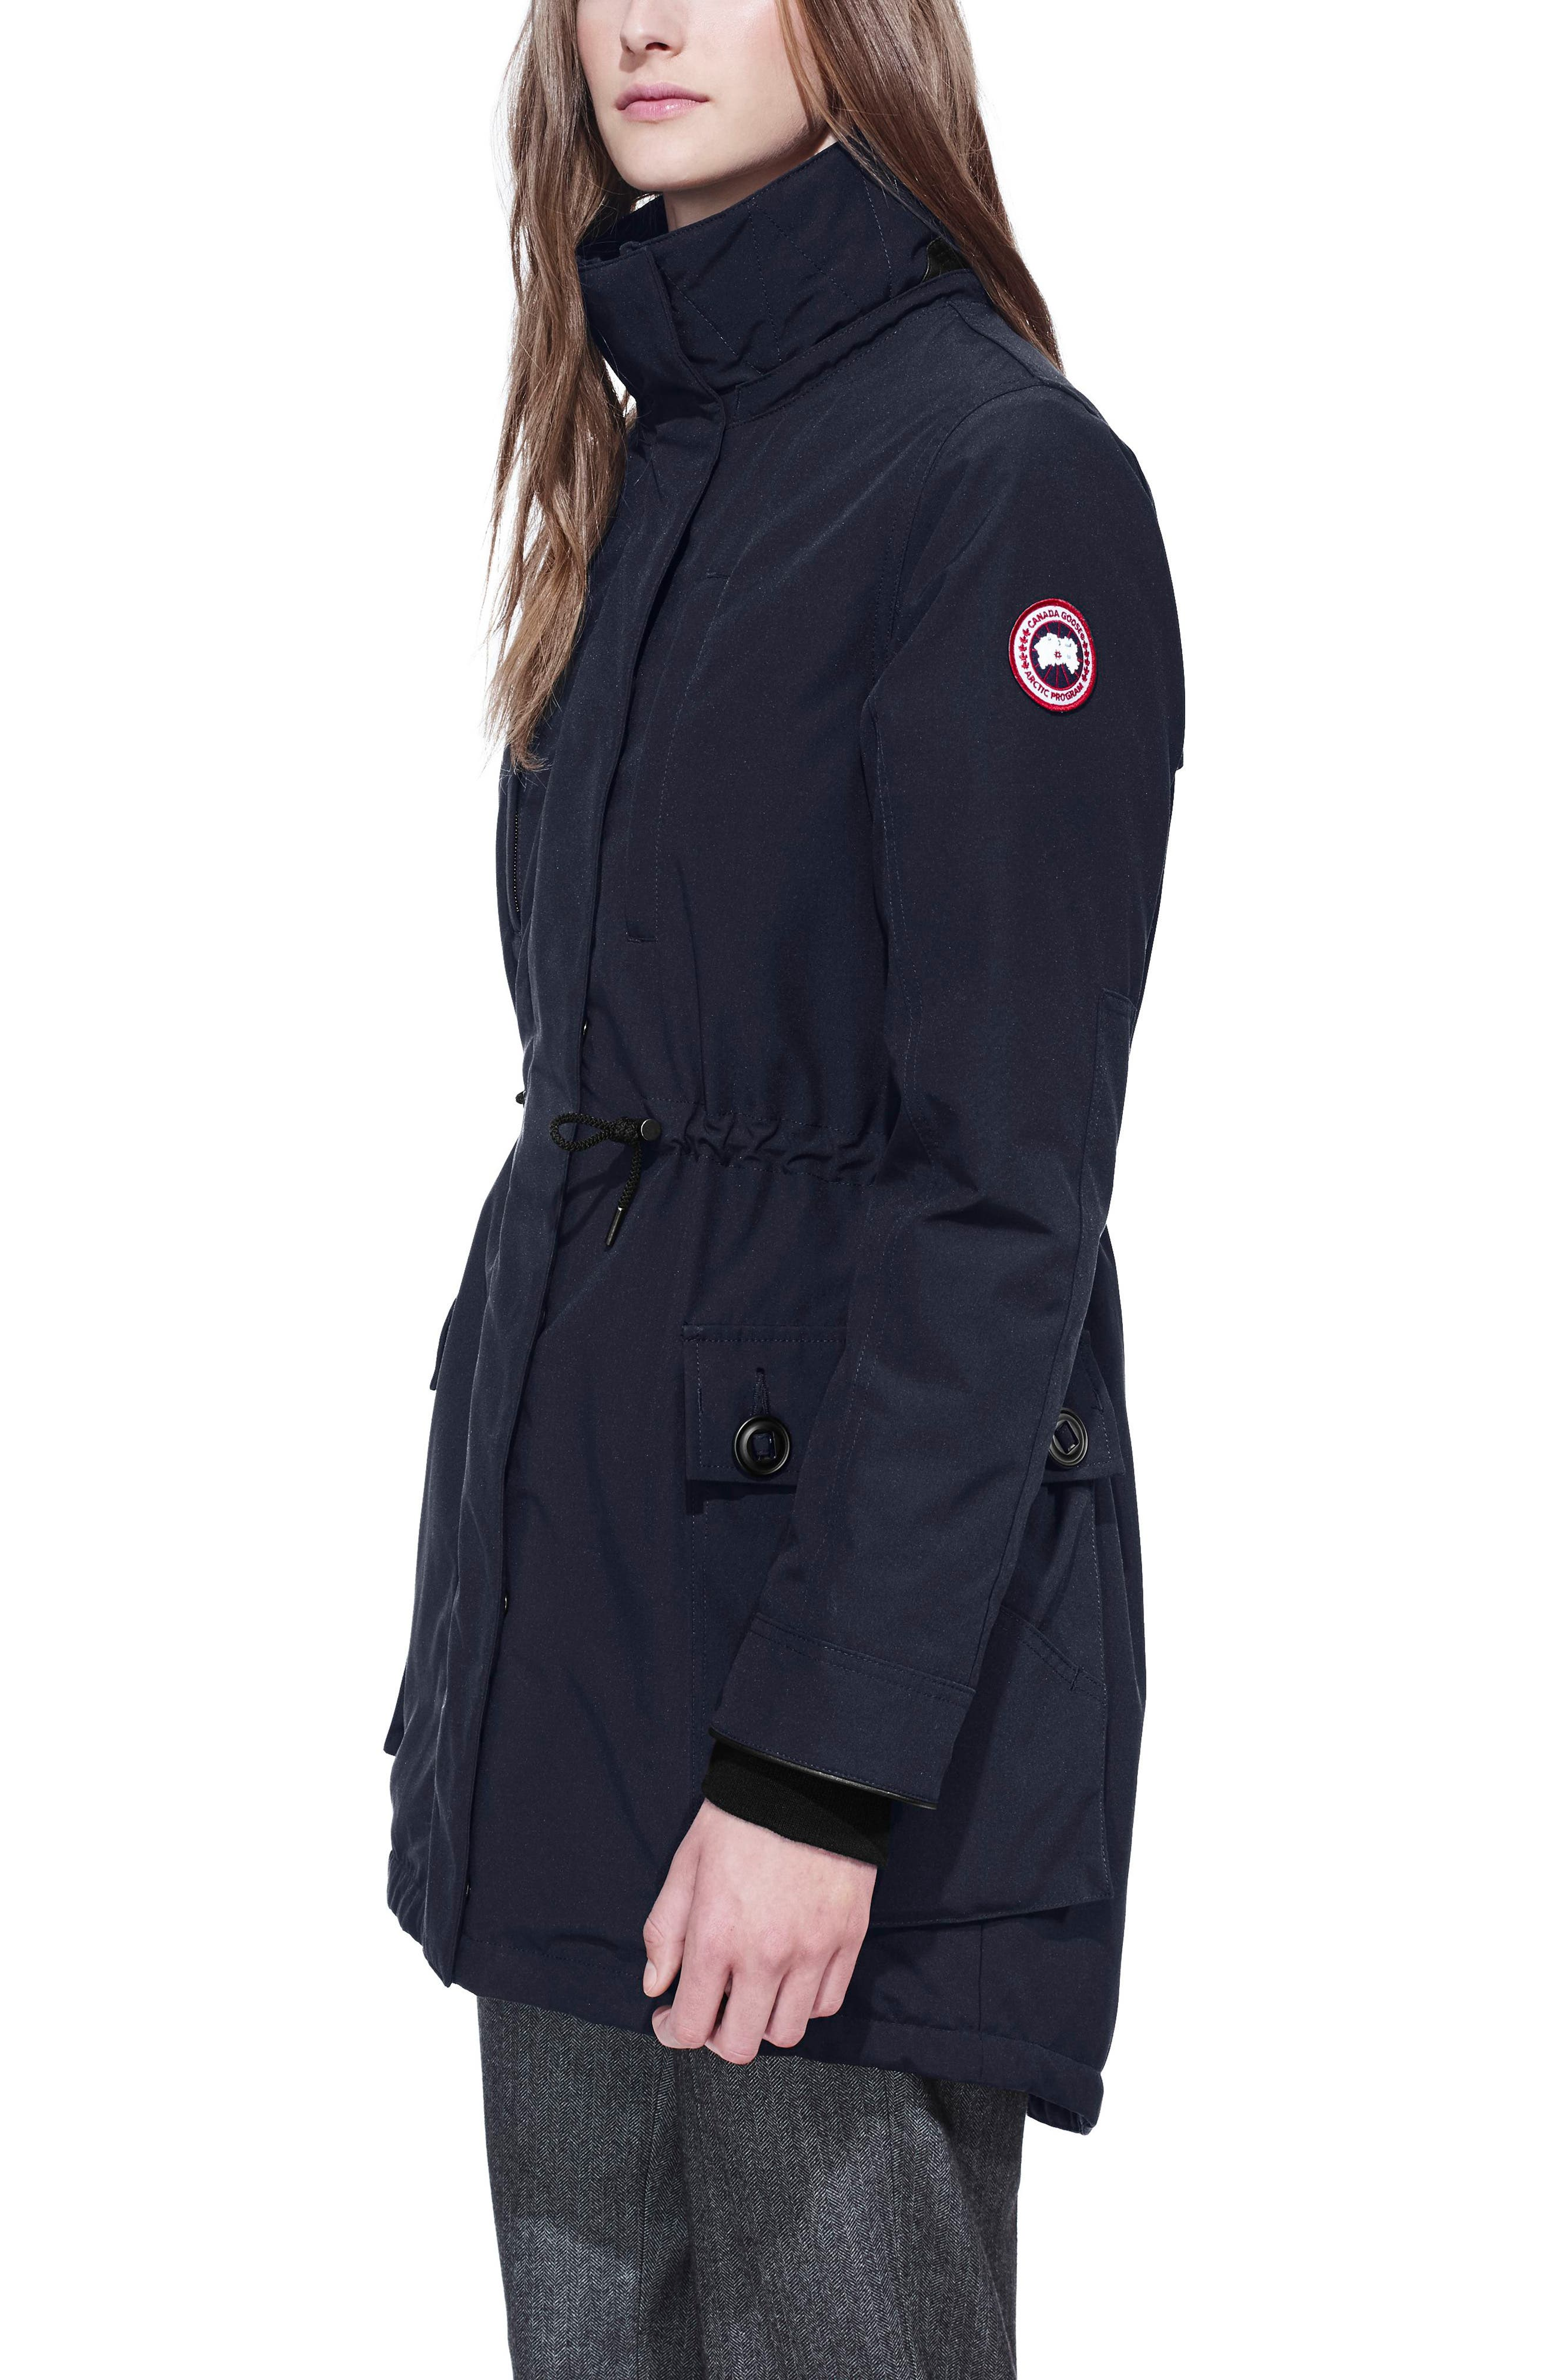 CANADA GOOSE, Perley Waterproof 675-Fill-Power Down 3-in-1 Parka, Alternate thumbnail 6, color, ADMIRAL BLUE